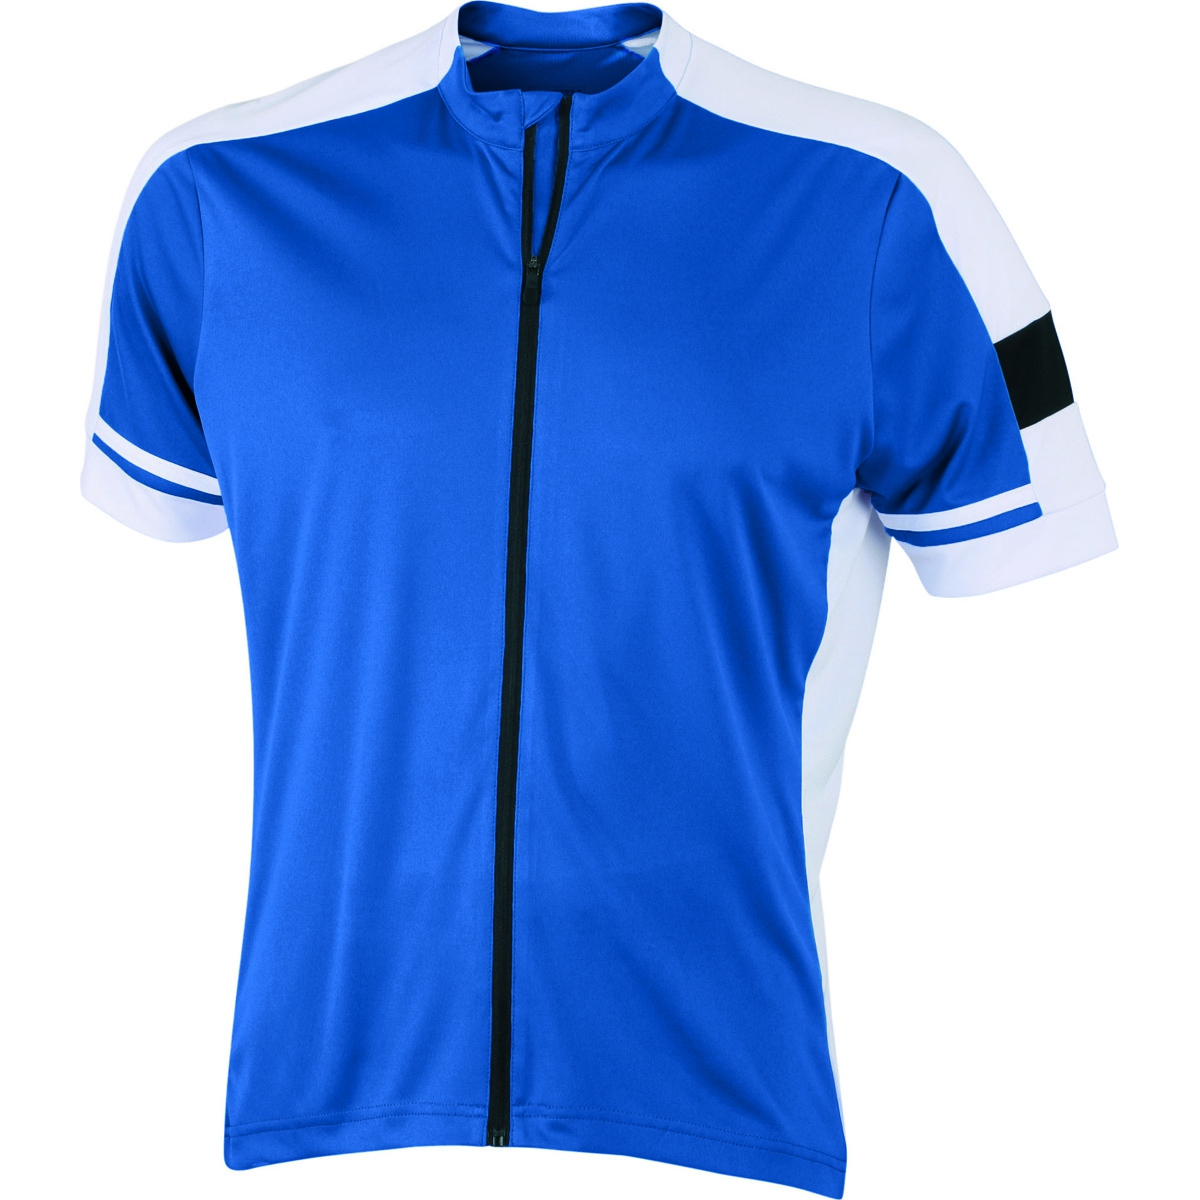 maillot cycliste zipp homme jn454 bleu cobalt. Black Bedroom Furniture Sets. Home Design Ideas